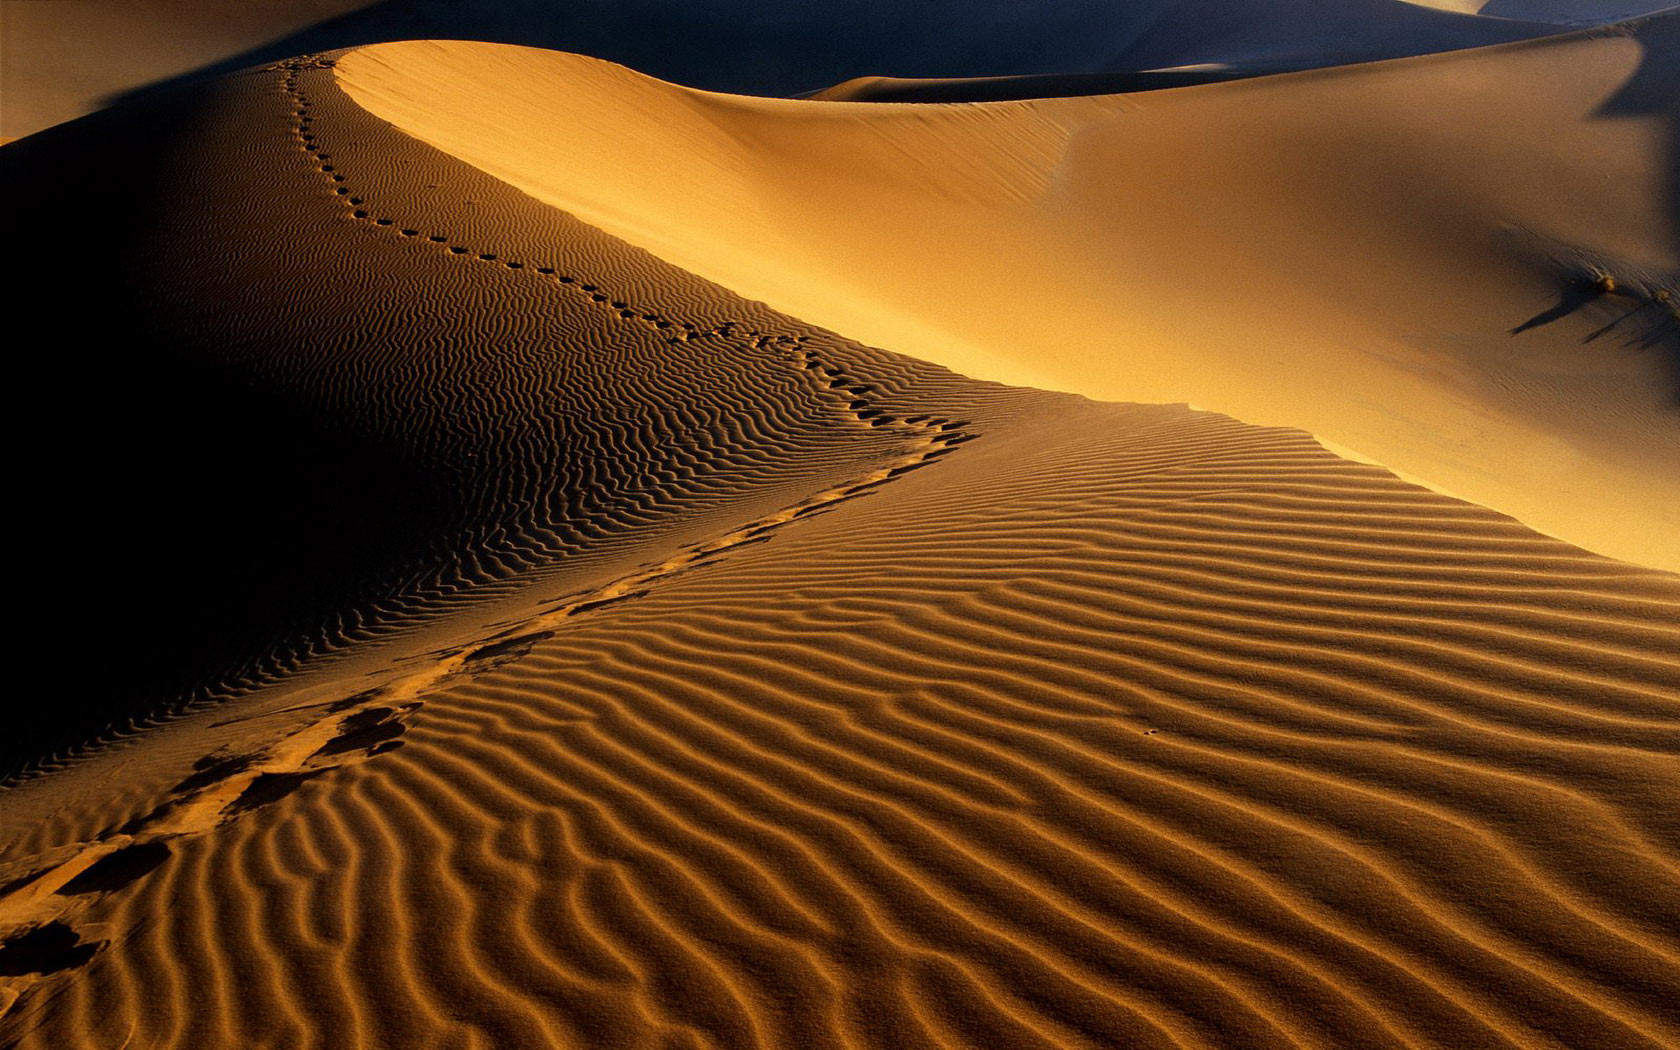 Desktop Backgrounds · Windows Vista Desert sand vista background From Windows Vista (1680x1050, 396K)